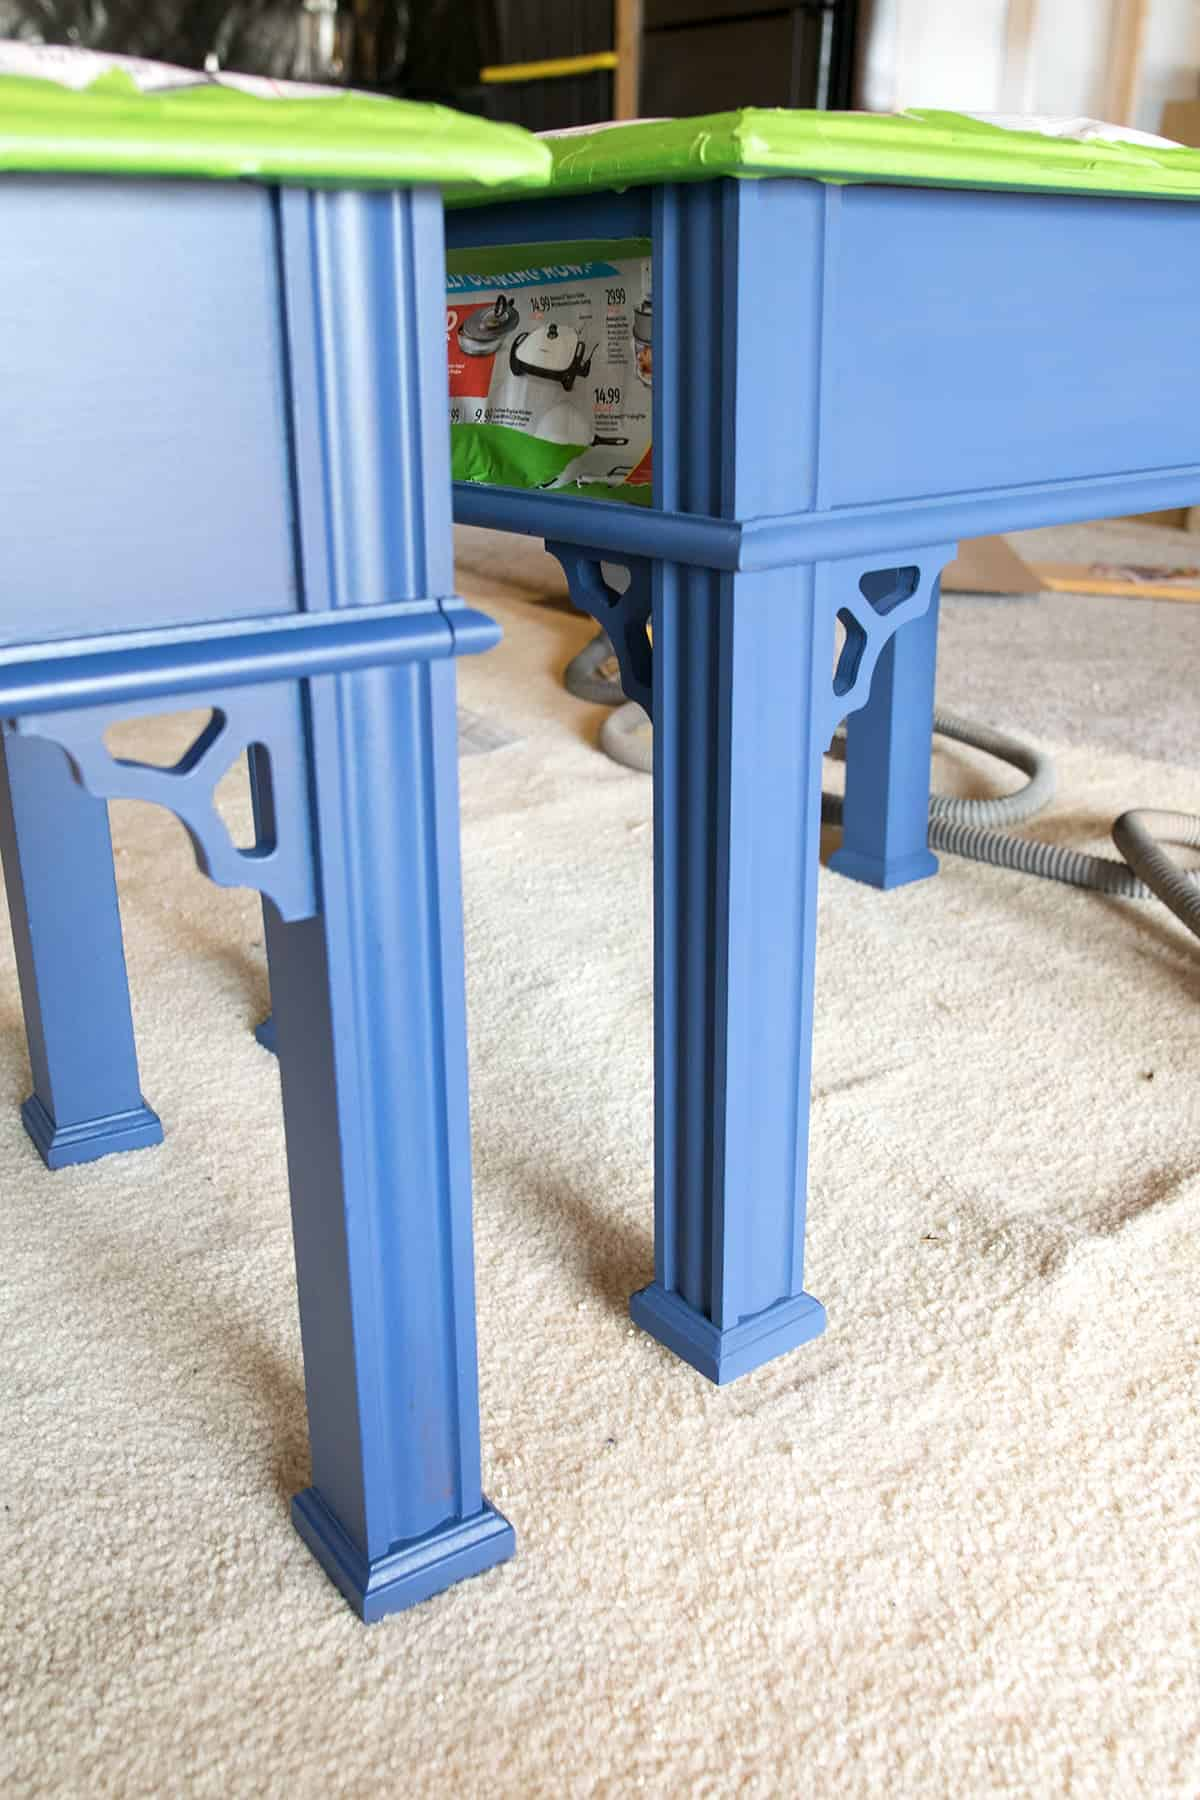 Difference in sheen for flat versus satin finish on two blue side tables